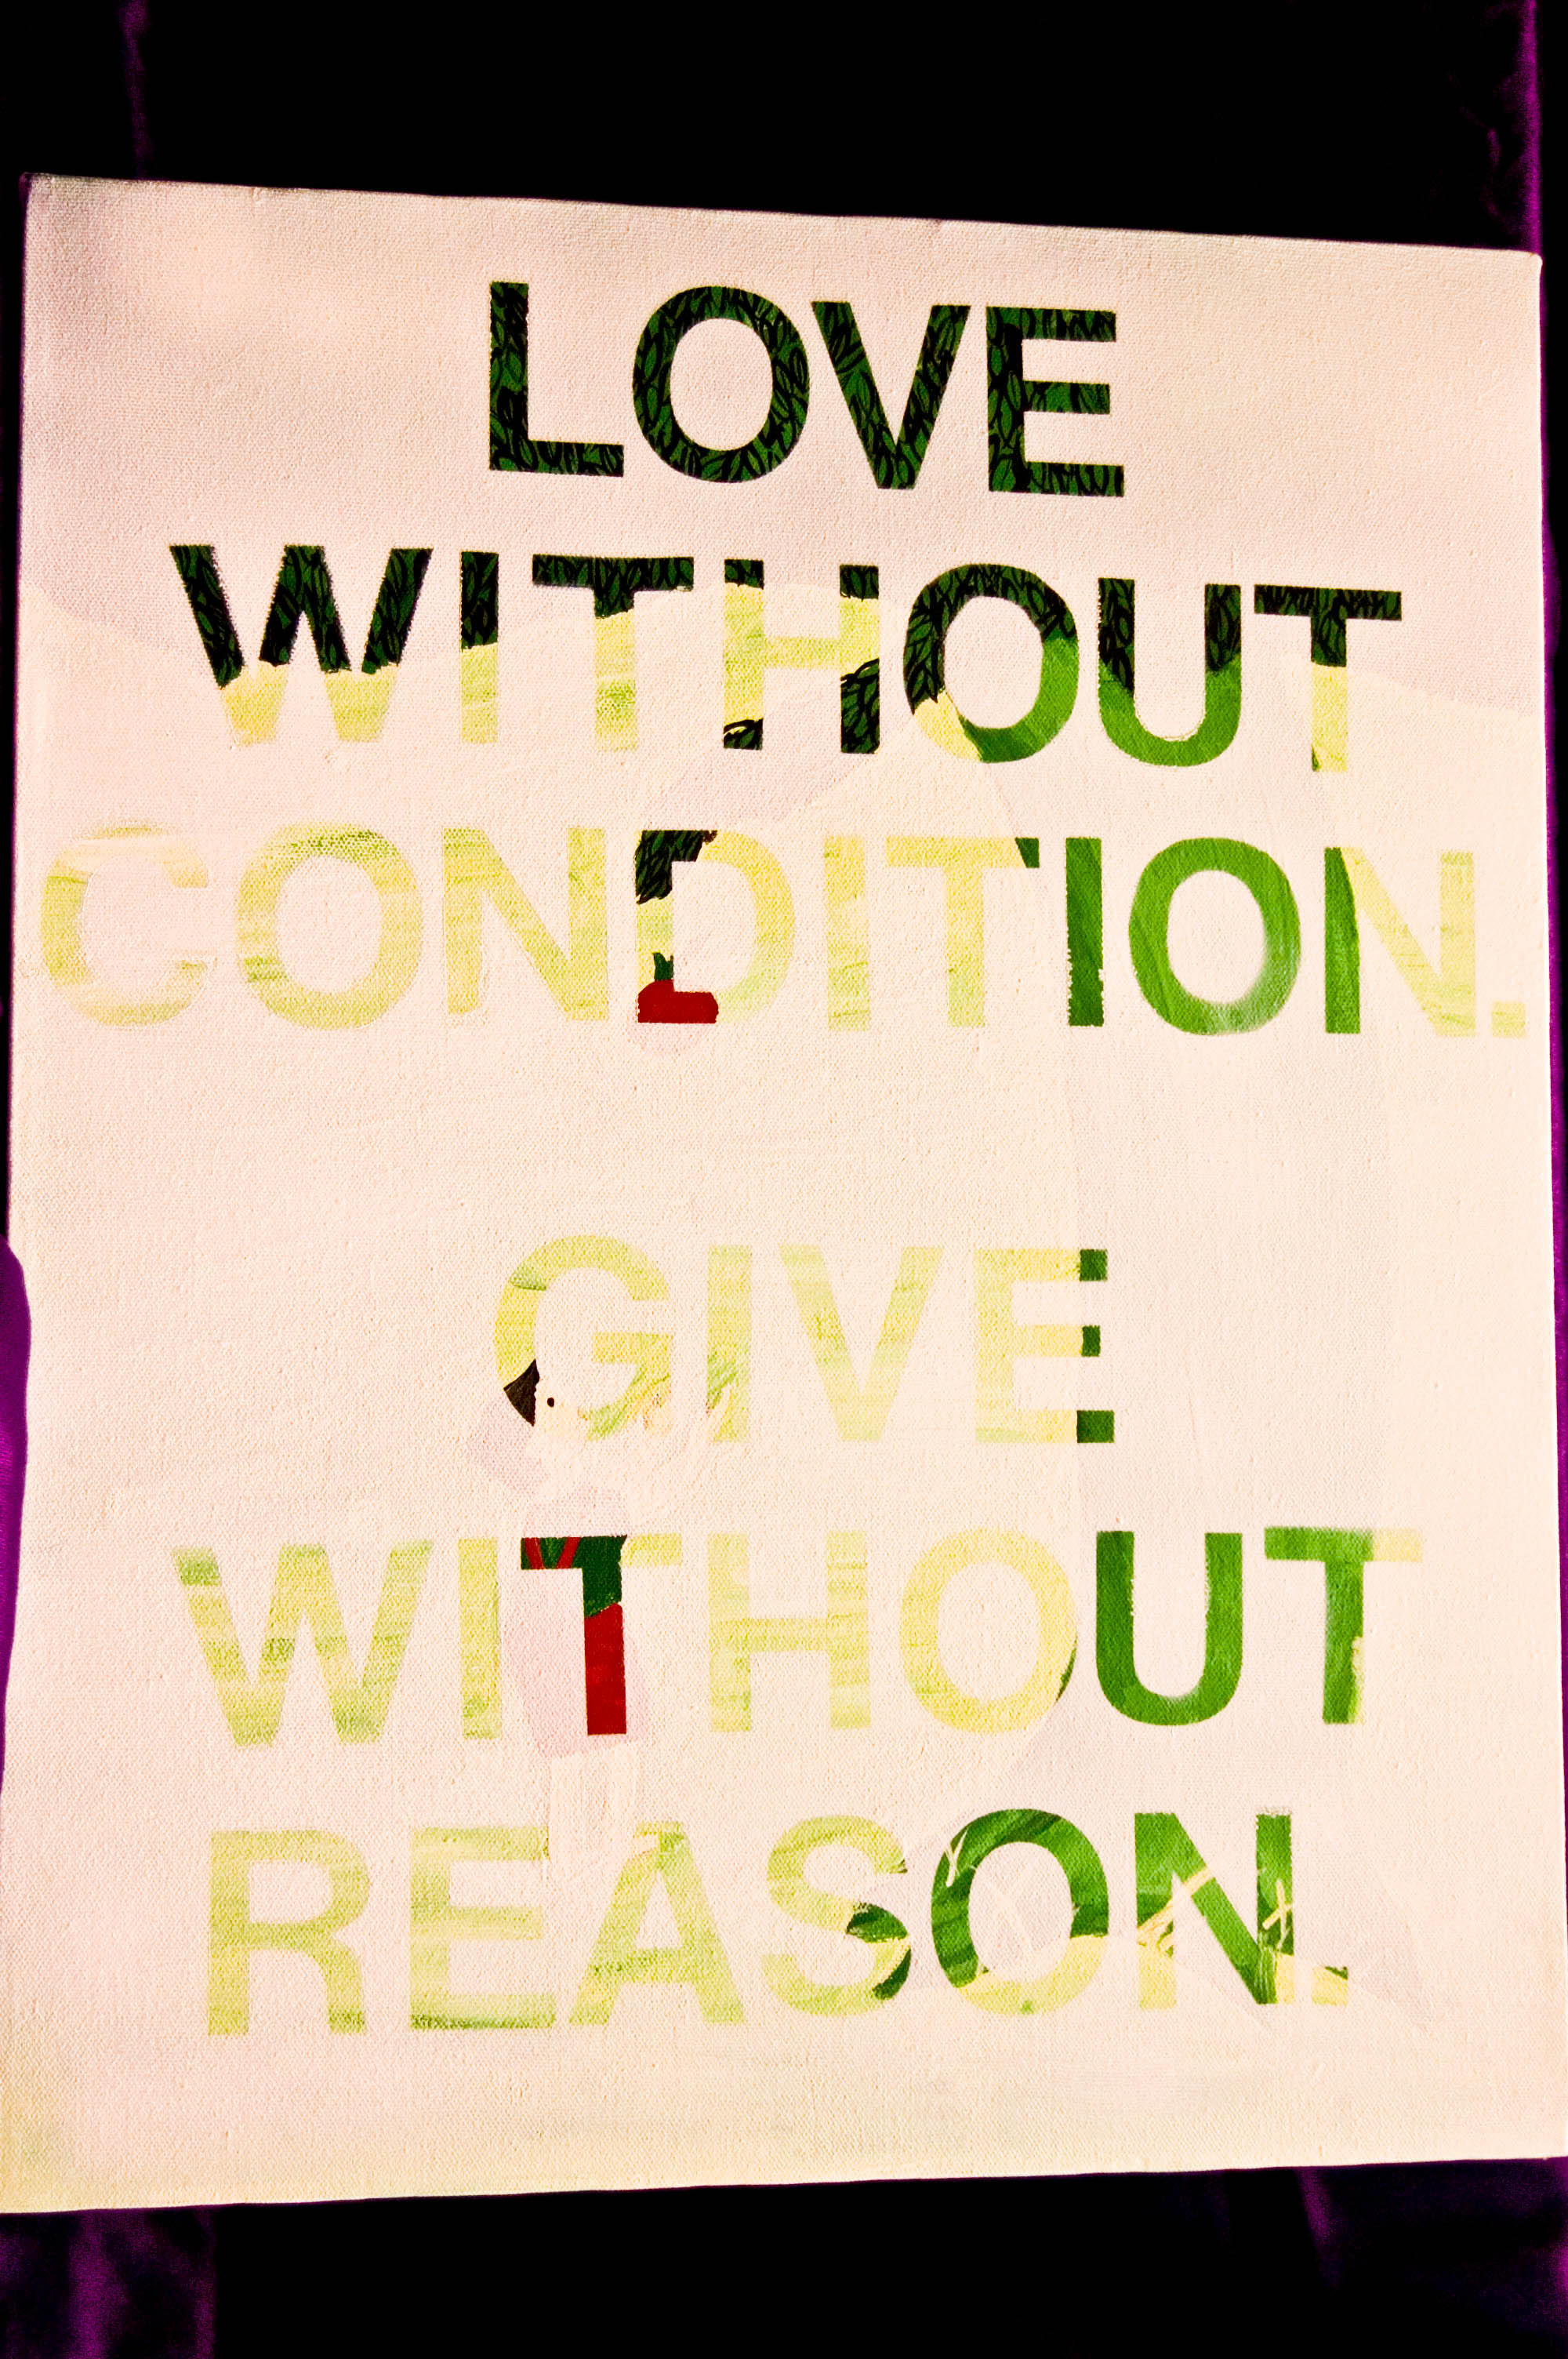 Love Without Condition